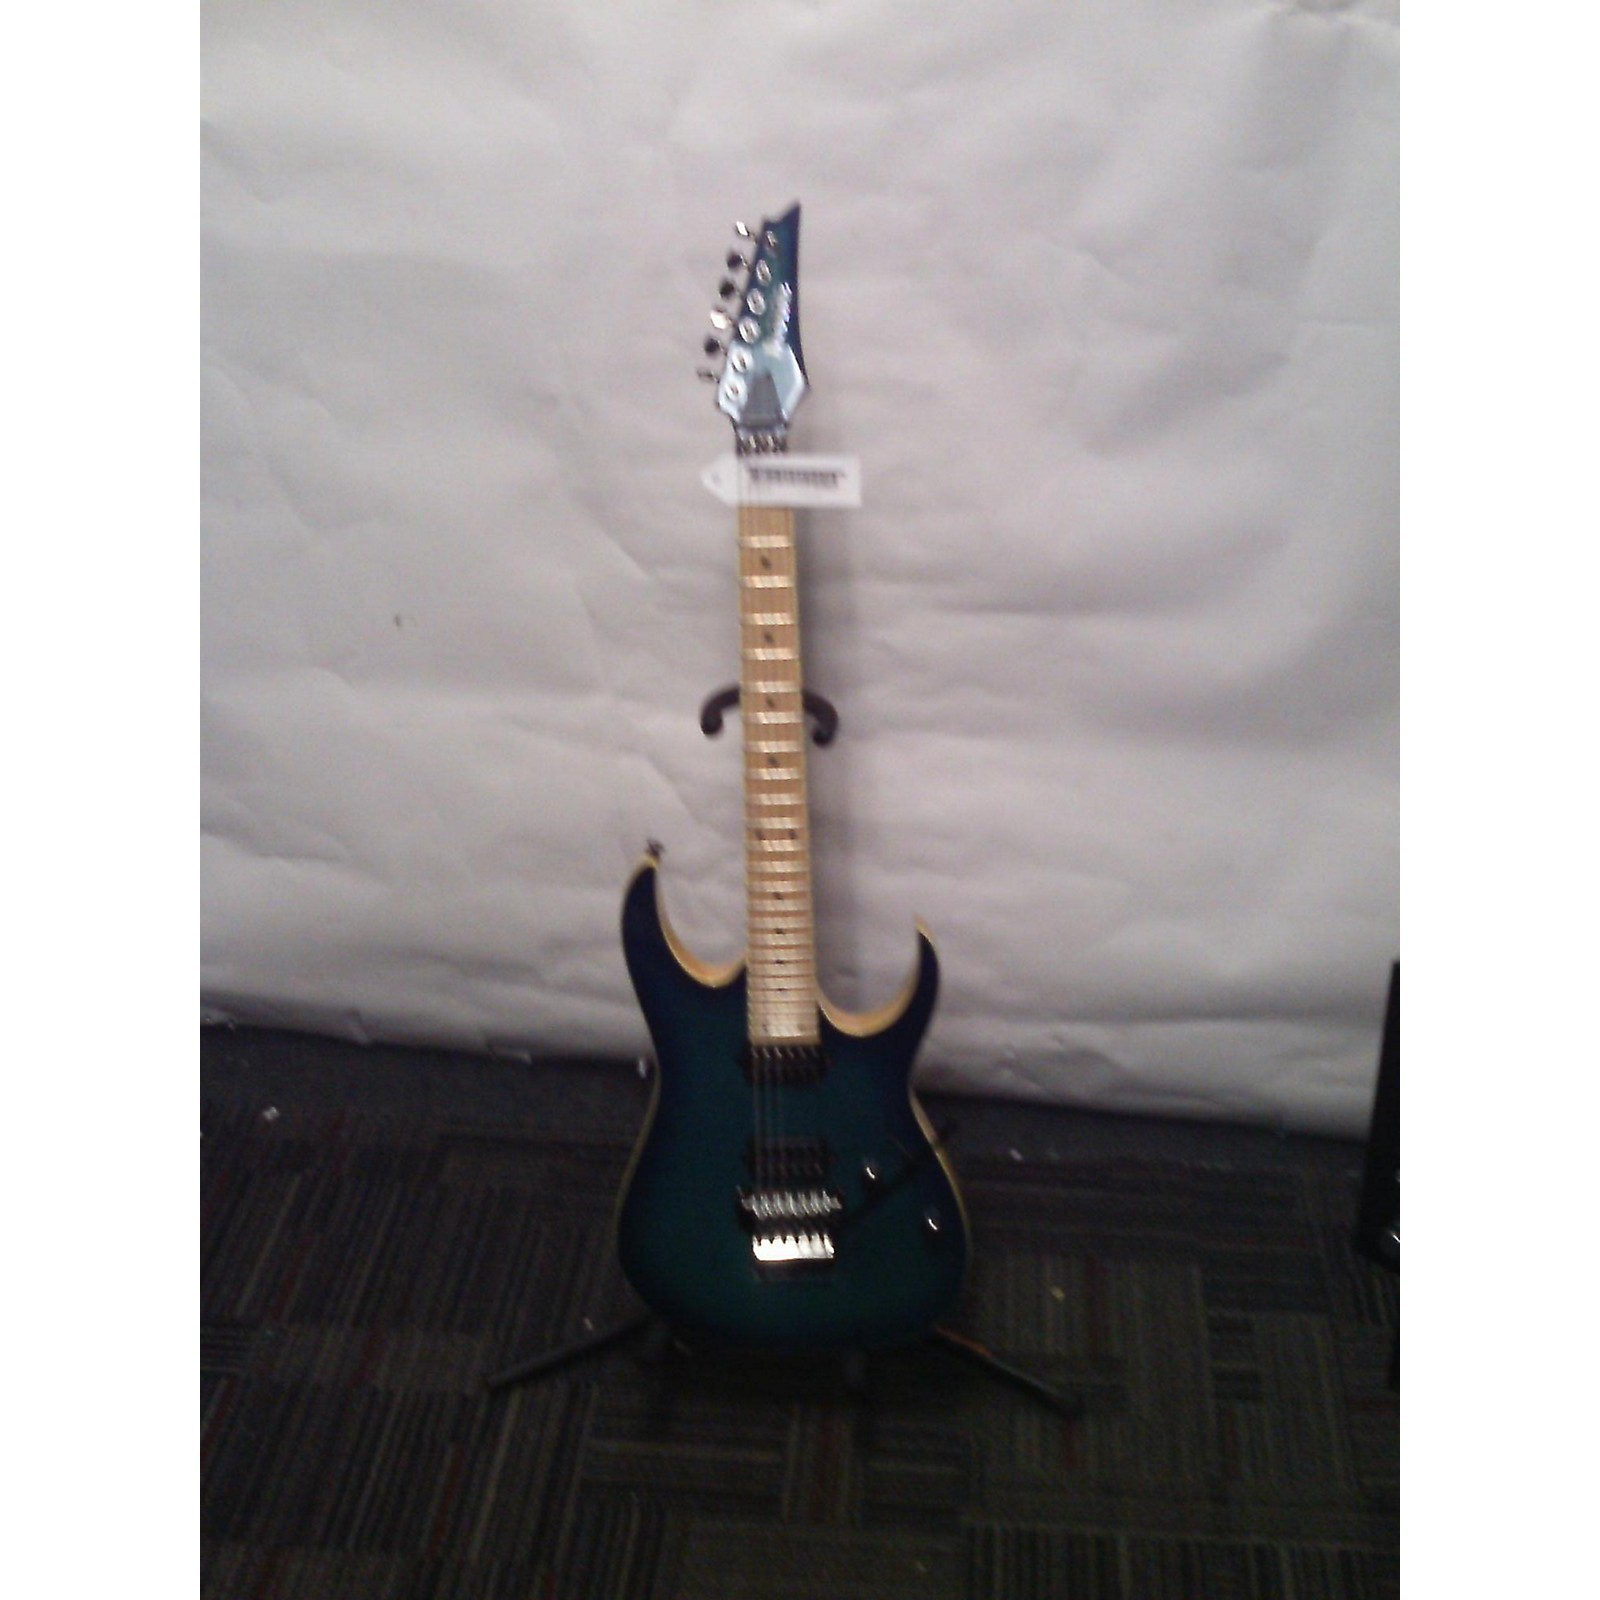 Ibanez UV70 Universe Steve Vai Signature 7 String Solid Body Electric Guitar